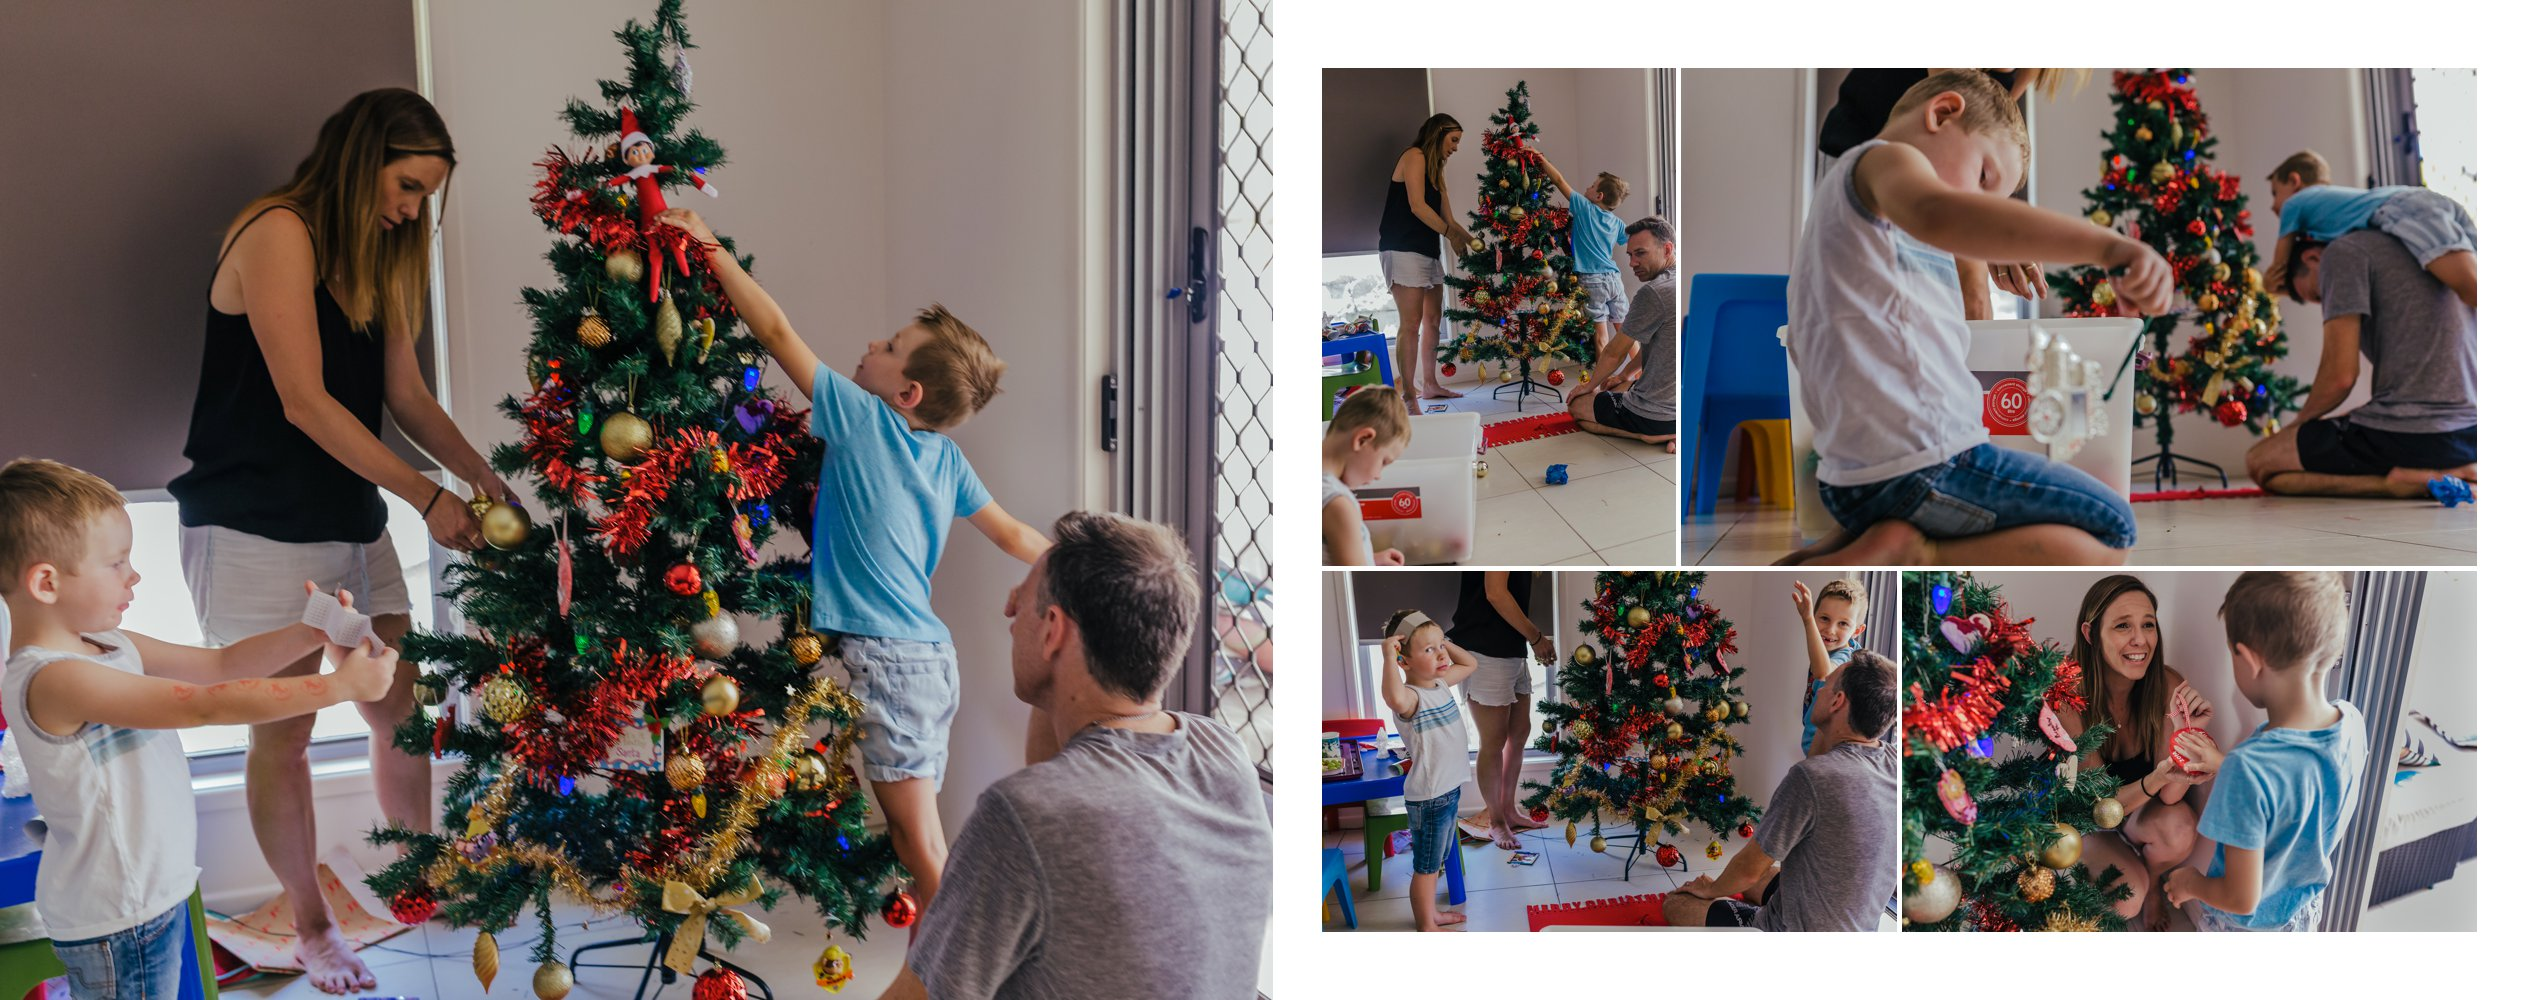 Picture-of-photo-album-page-showing-family putting-up-the-xmas-tree